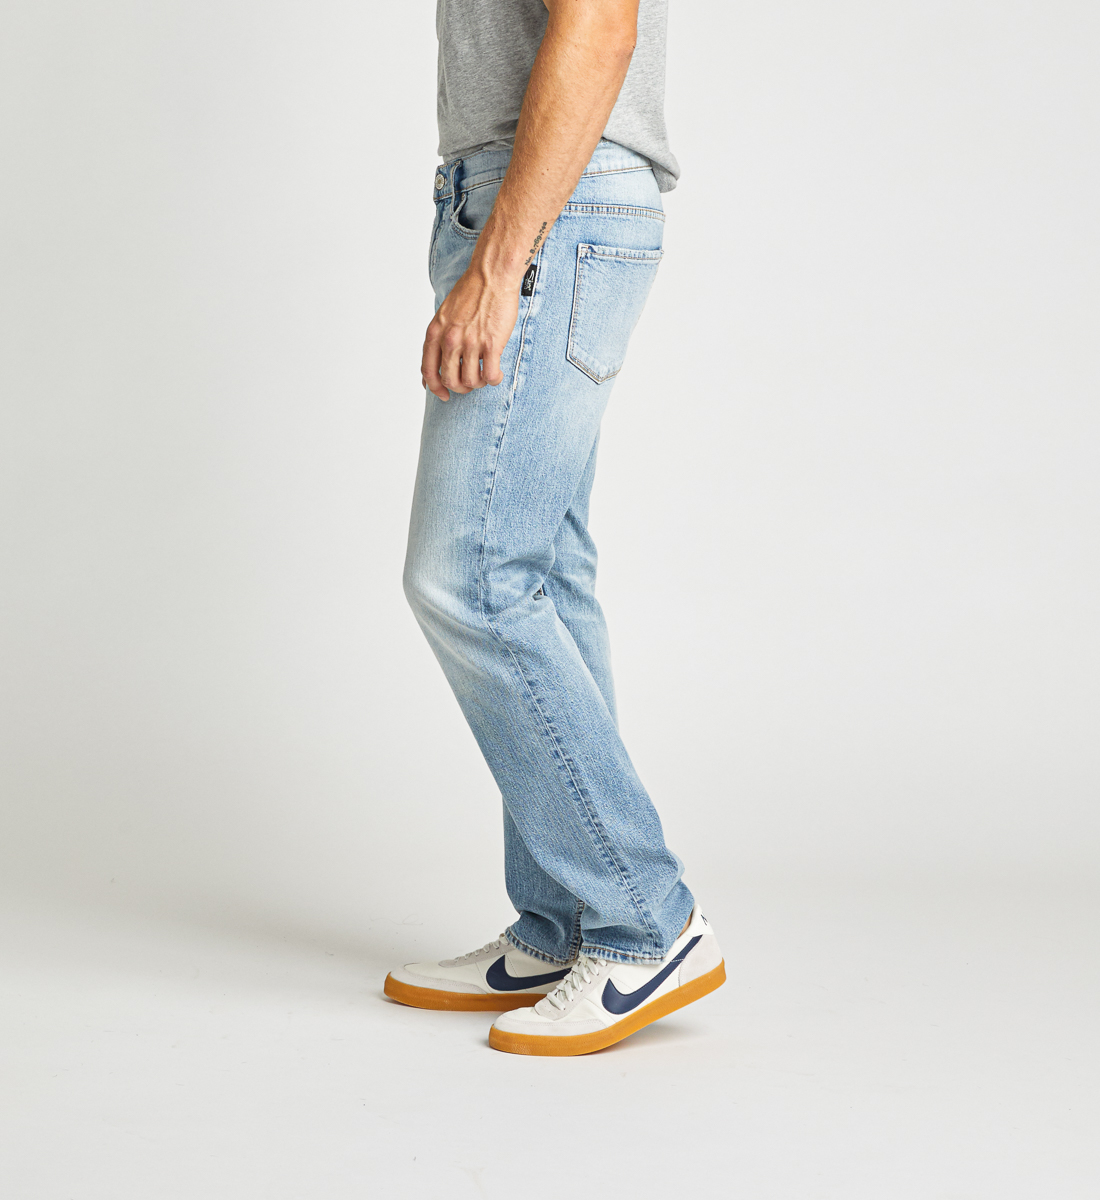 Allan Classic Fit Straight Leg Jeans Side